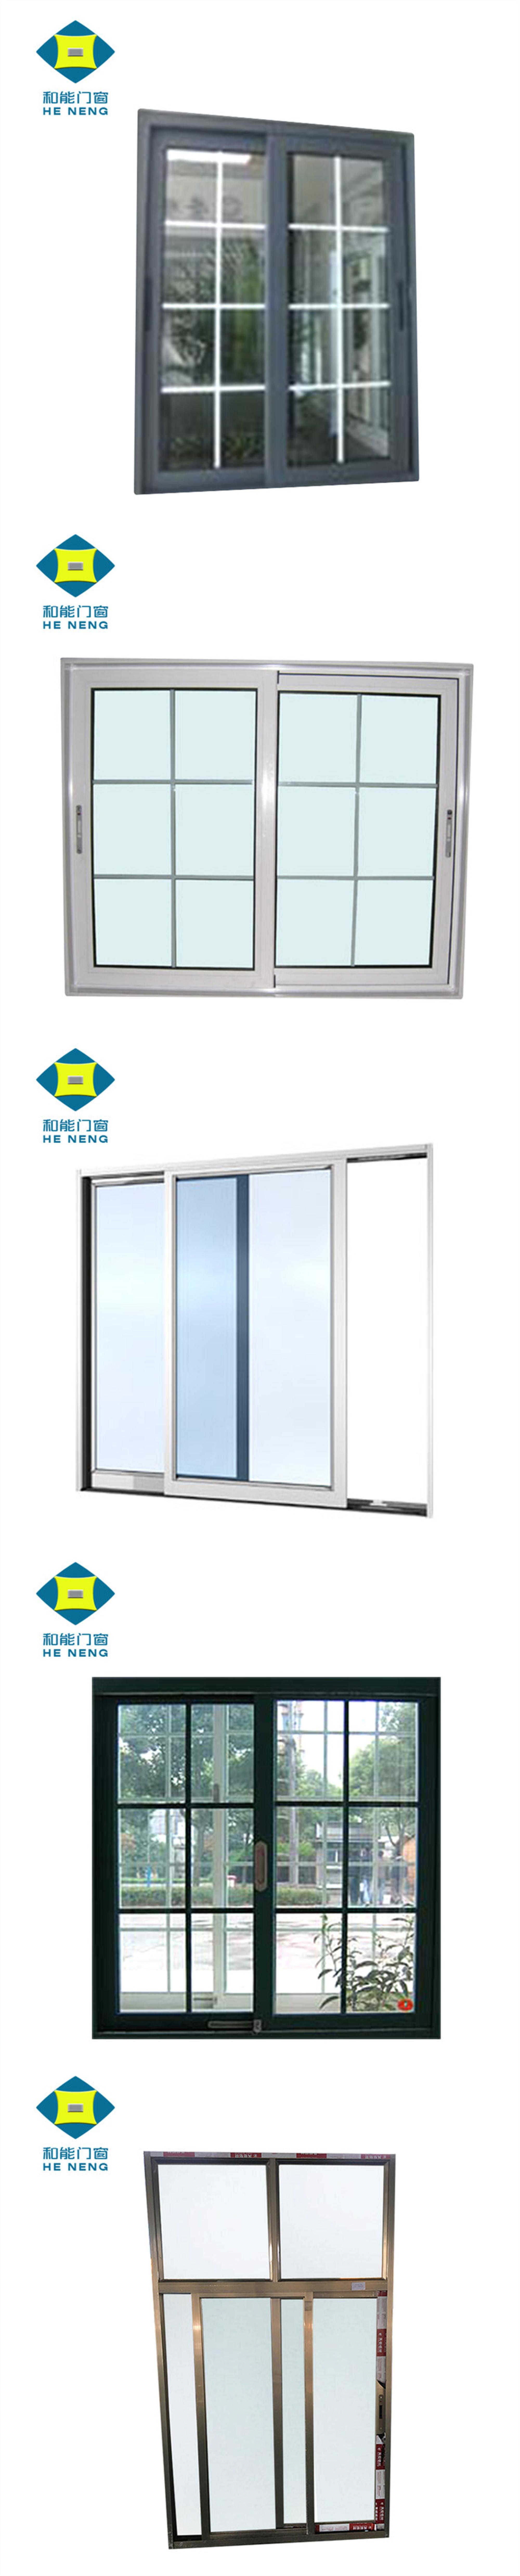 Grill Design Aluminum Frame Sliding Windows And Doors